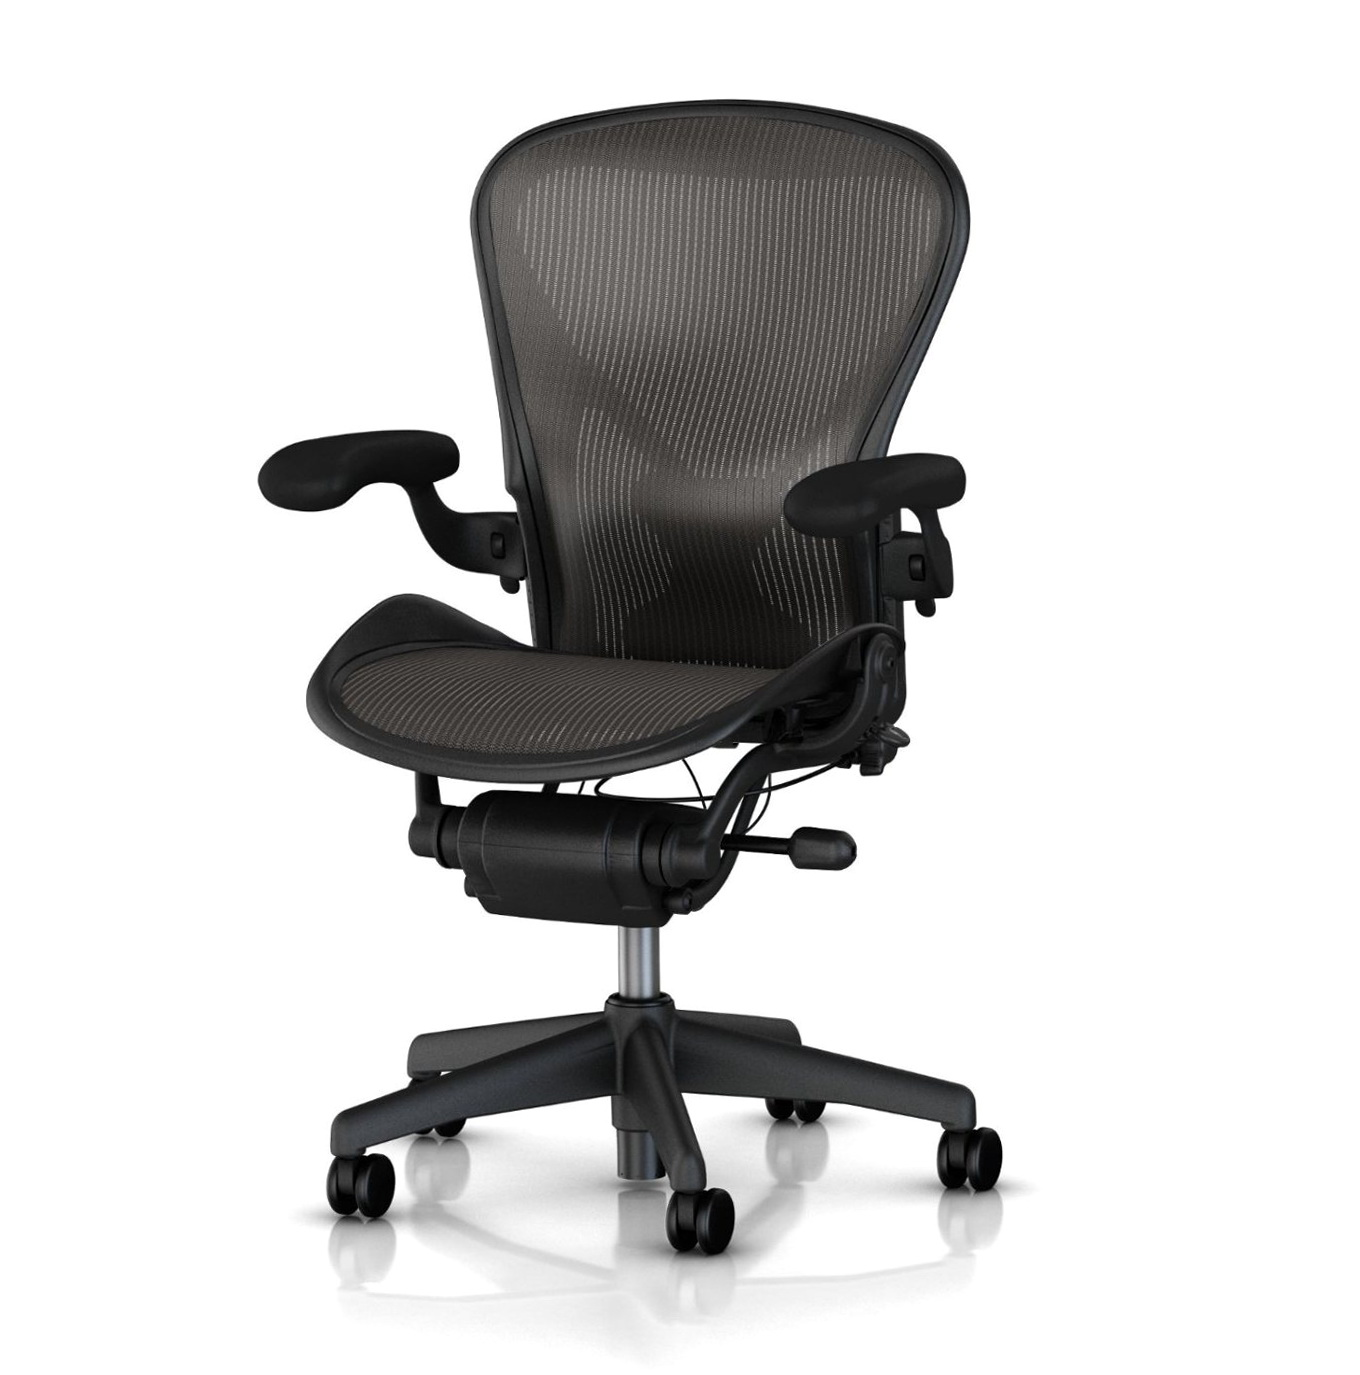 Herman Miller Aeron Chair Review